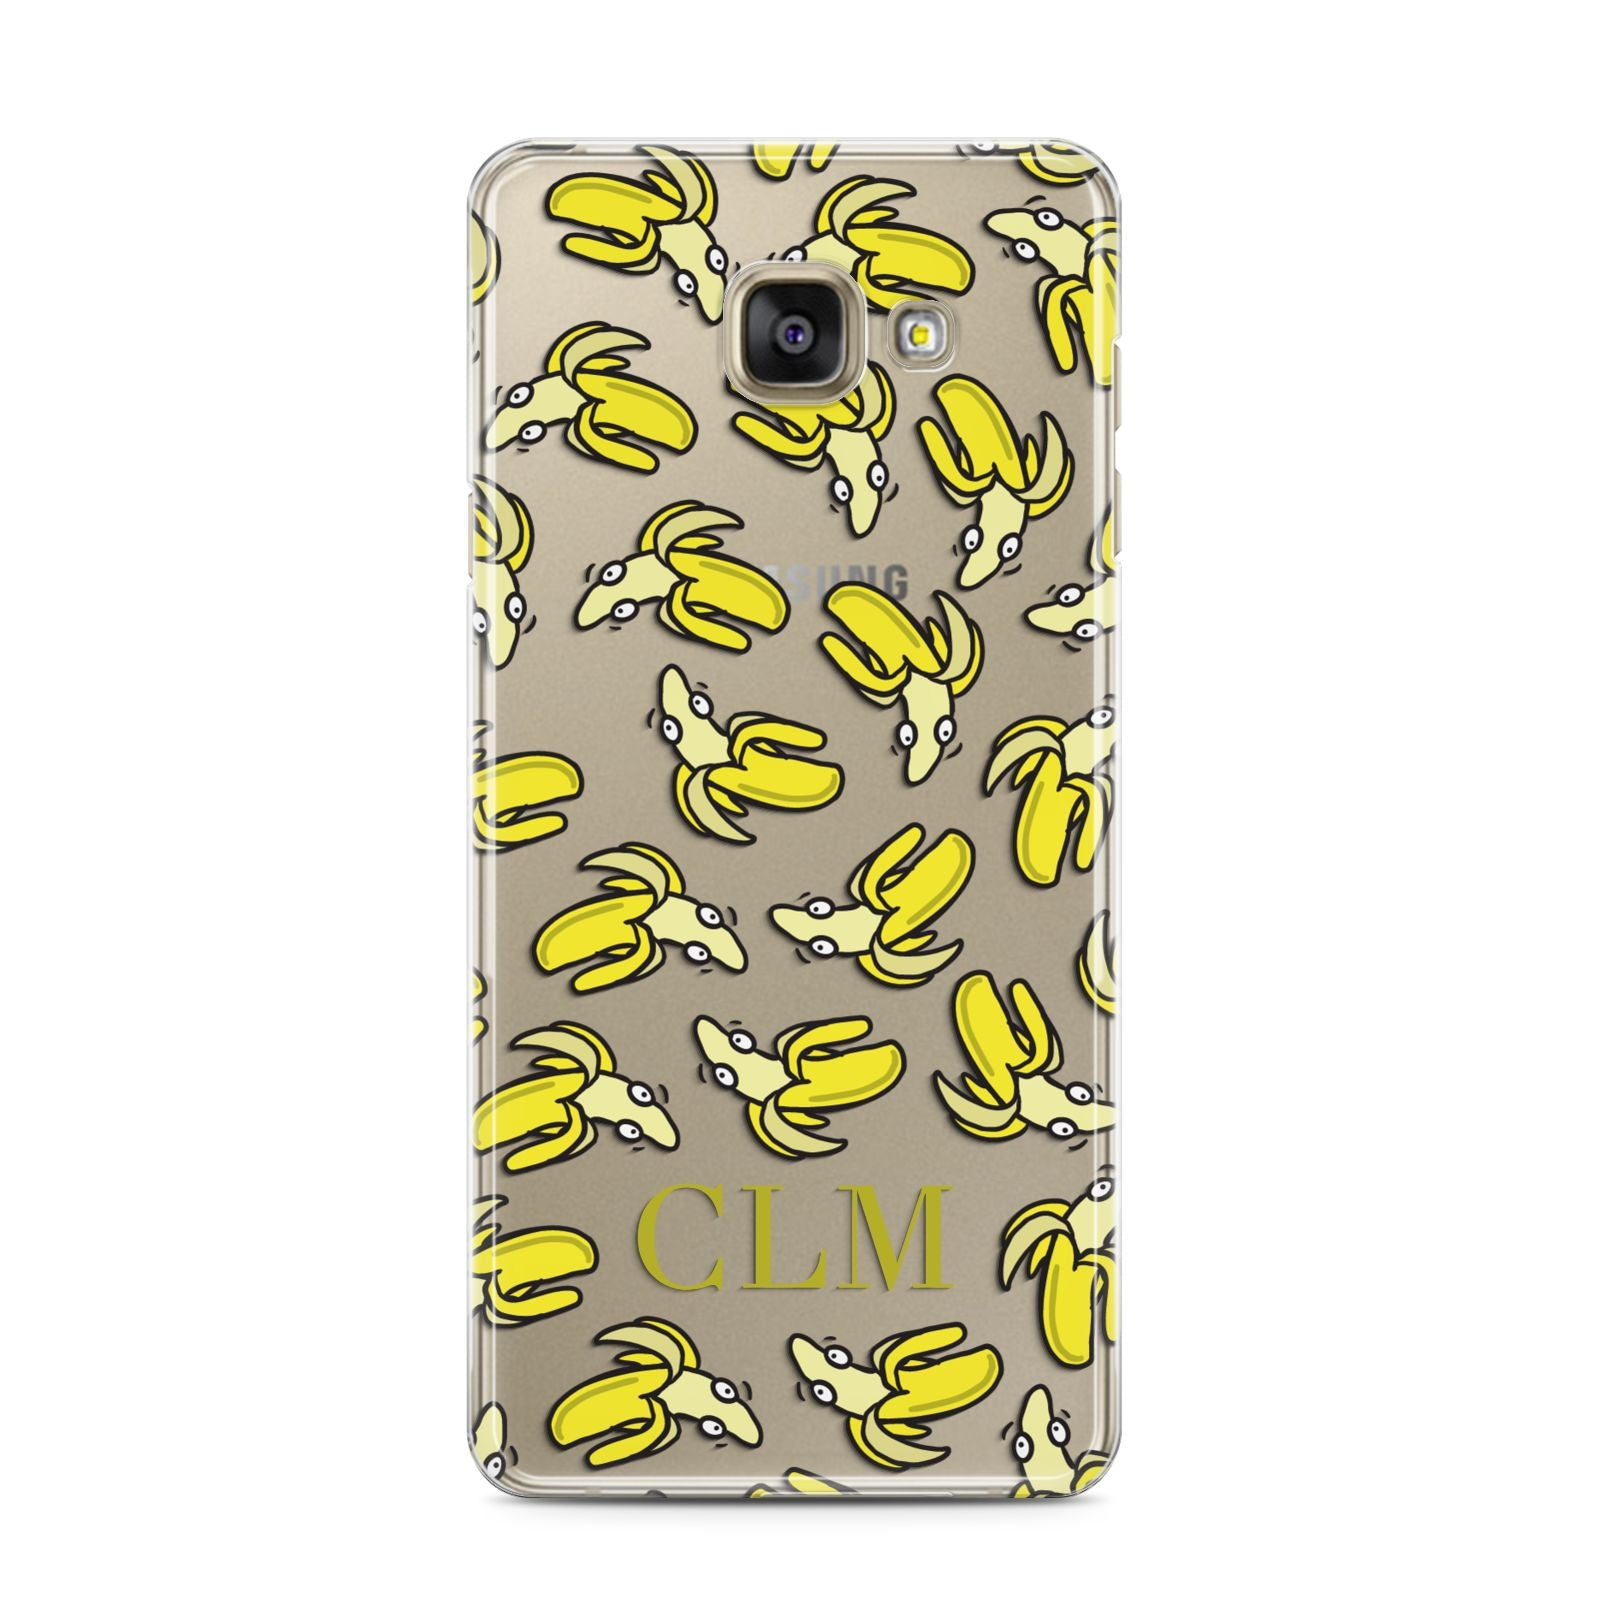 Personalised Banana Initials Clear Samsung Galaxy A3 2016 Case on gold phone